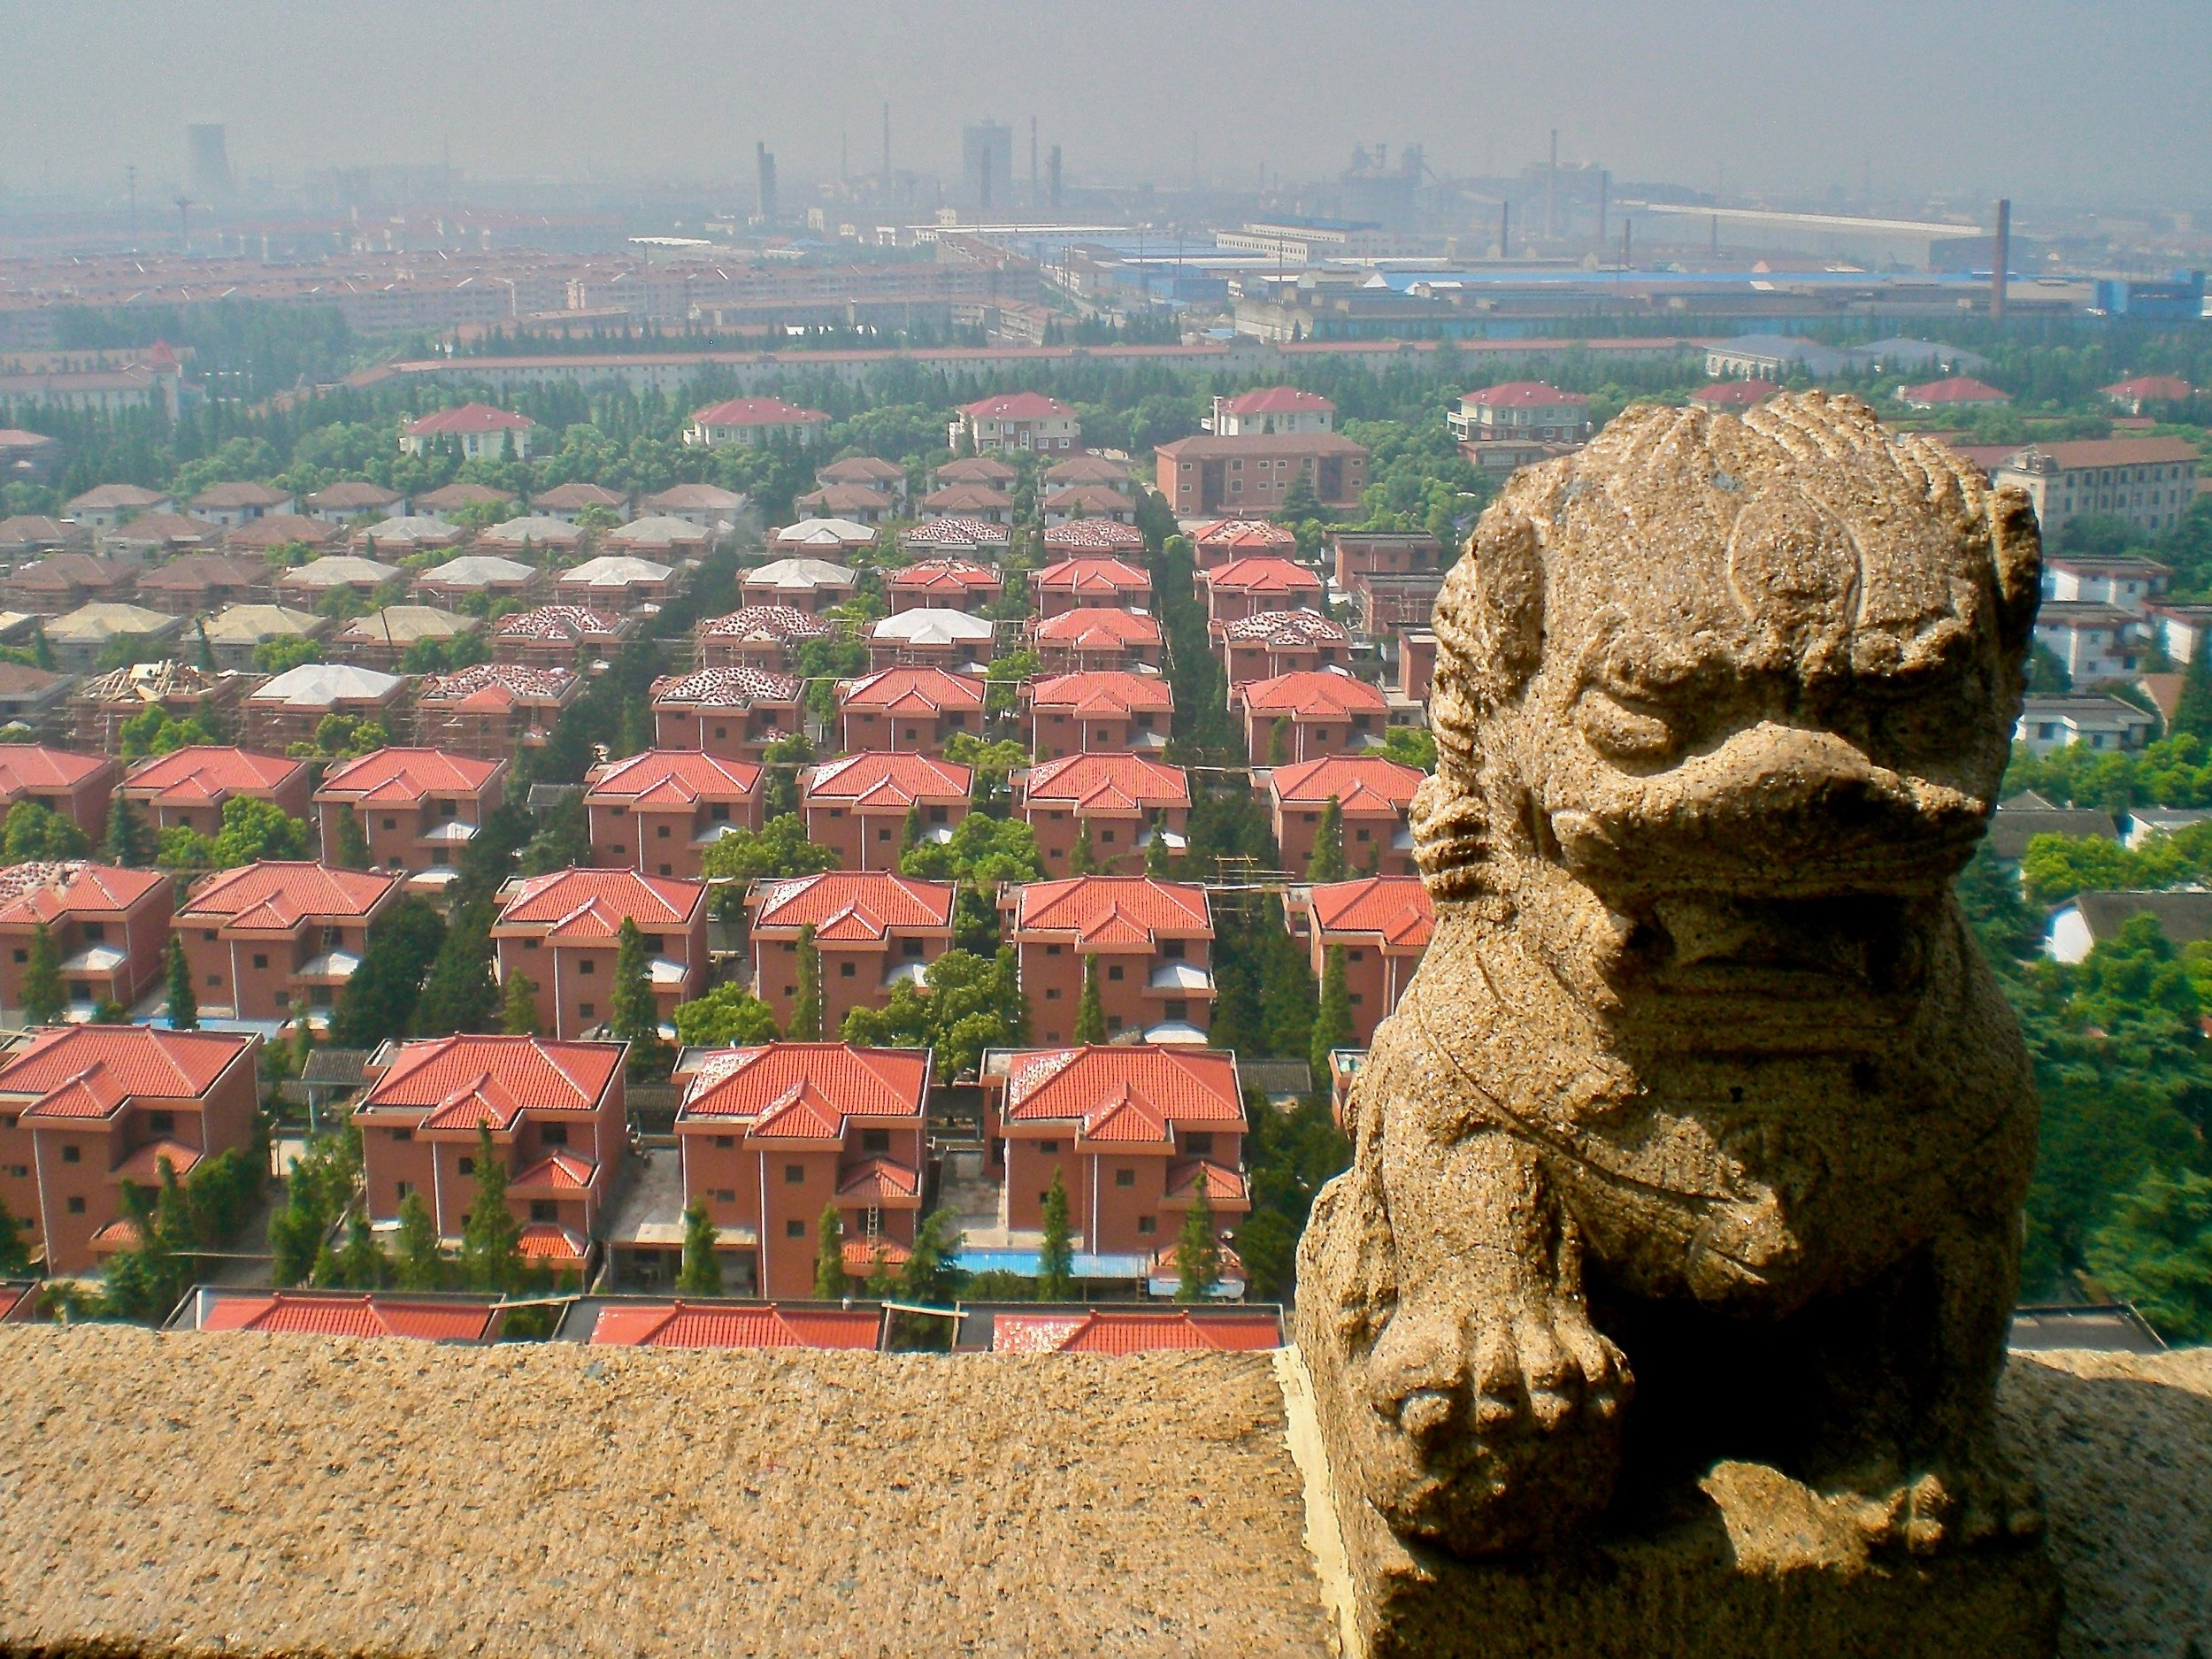 Huaxi, know as the richest town in China. (C) Remko Tanis